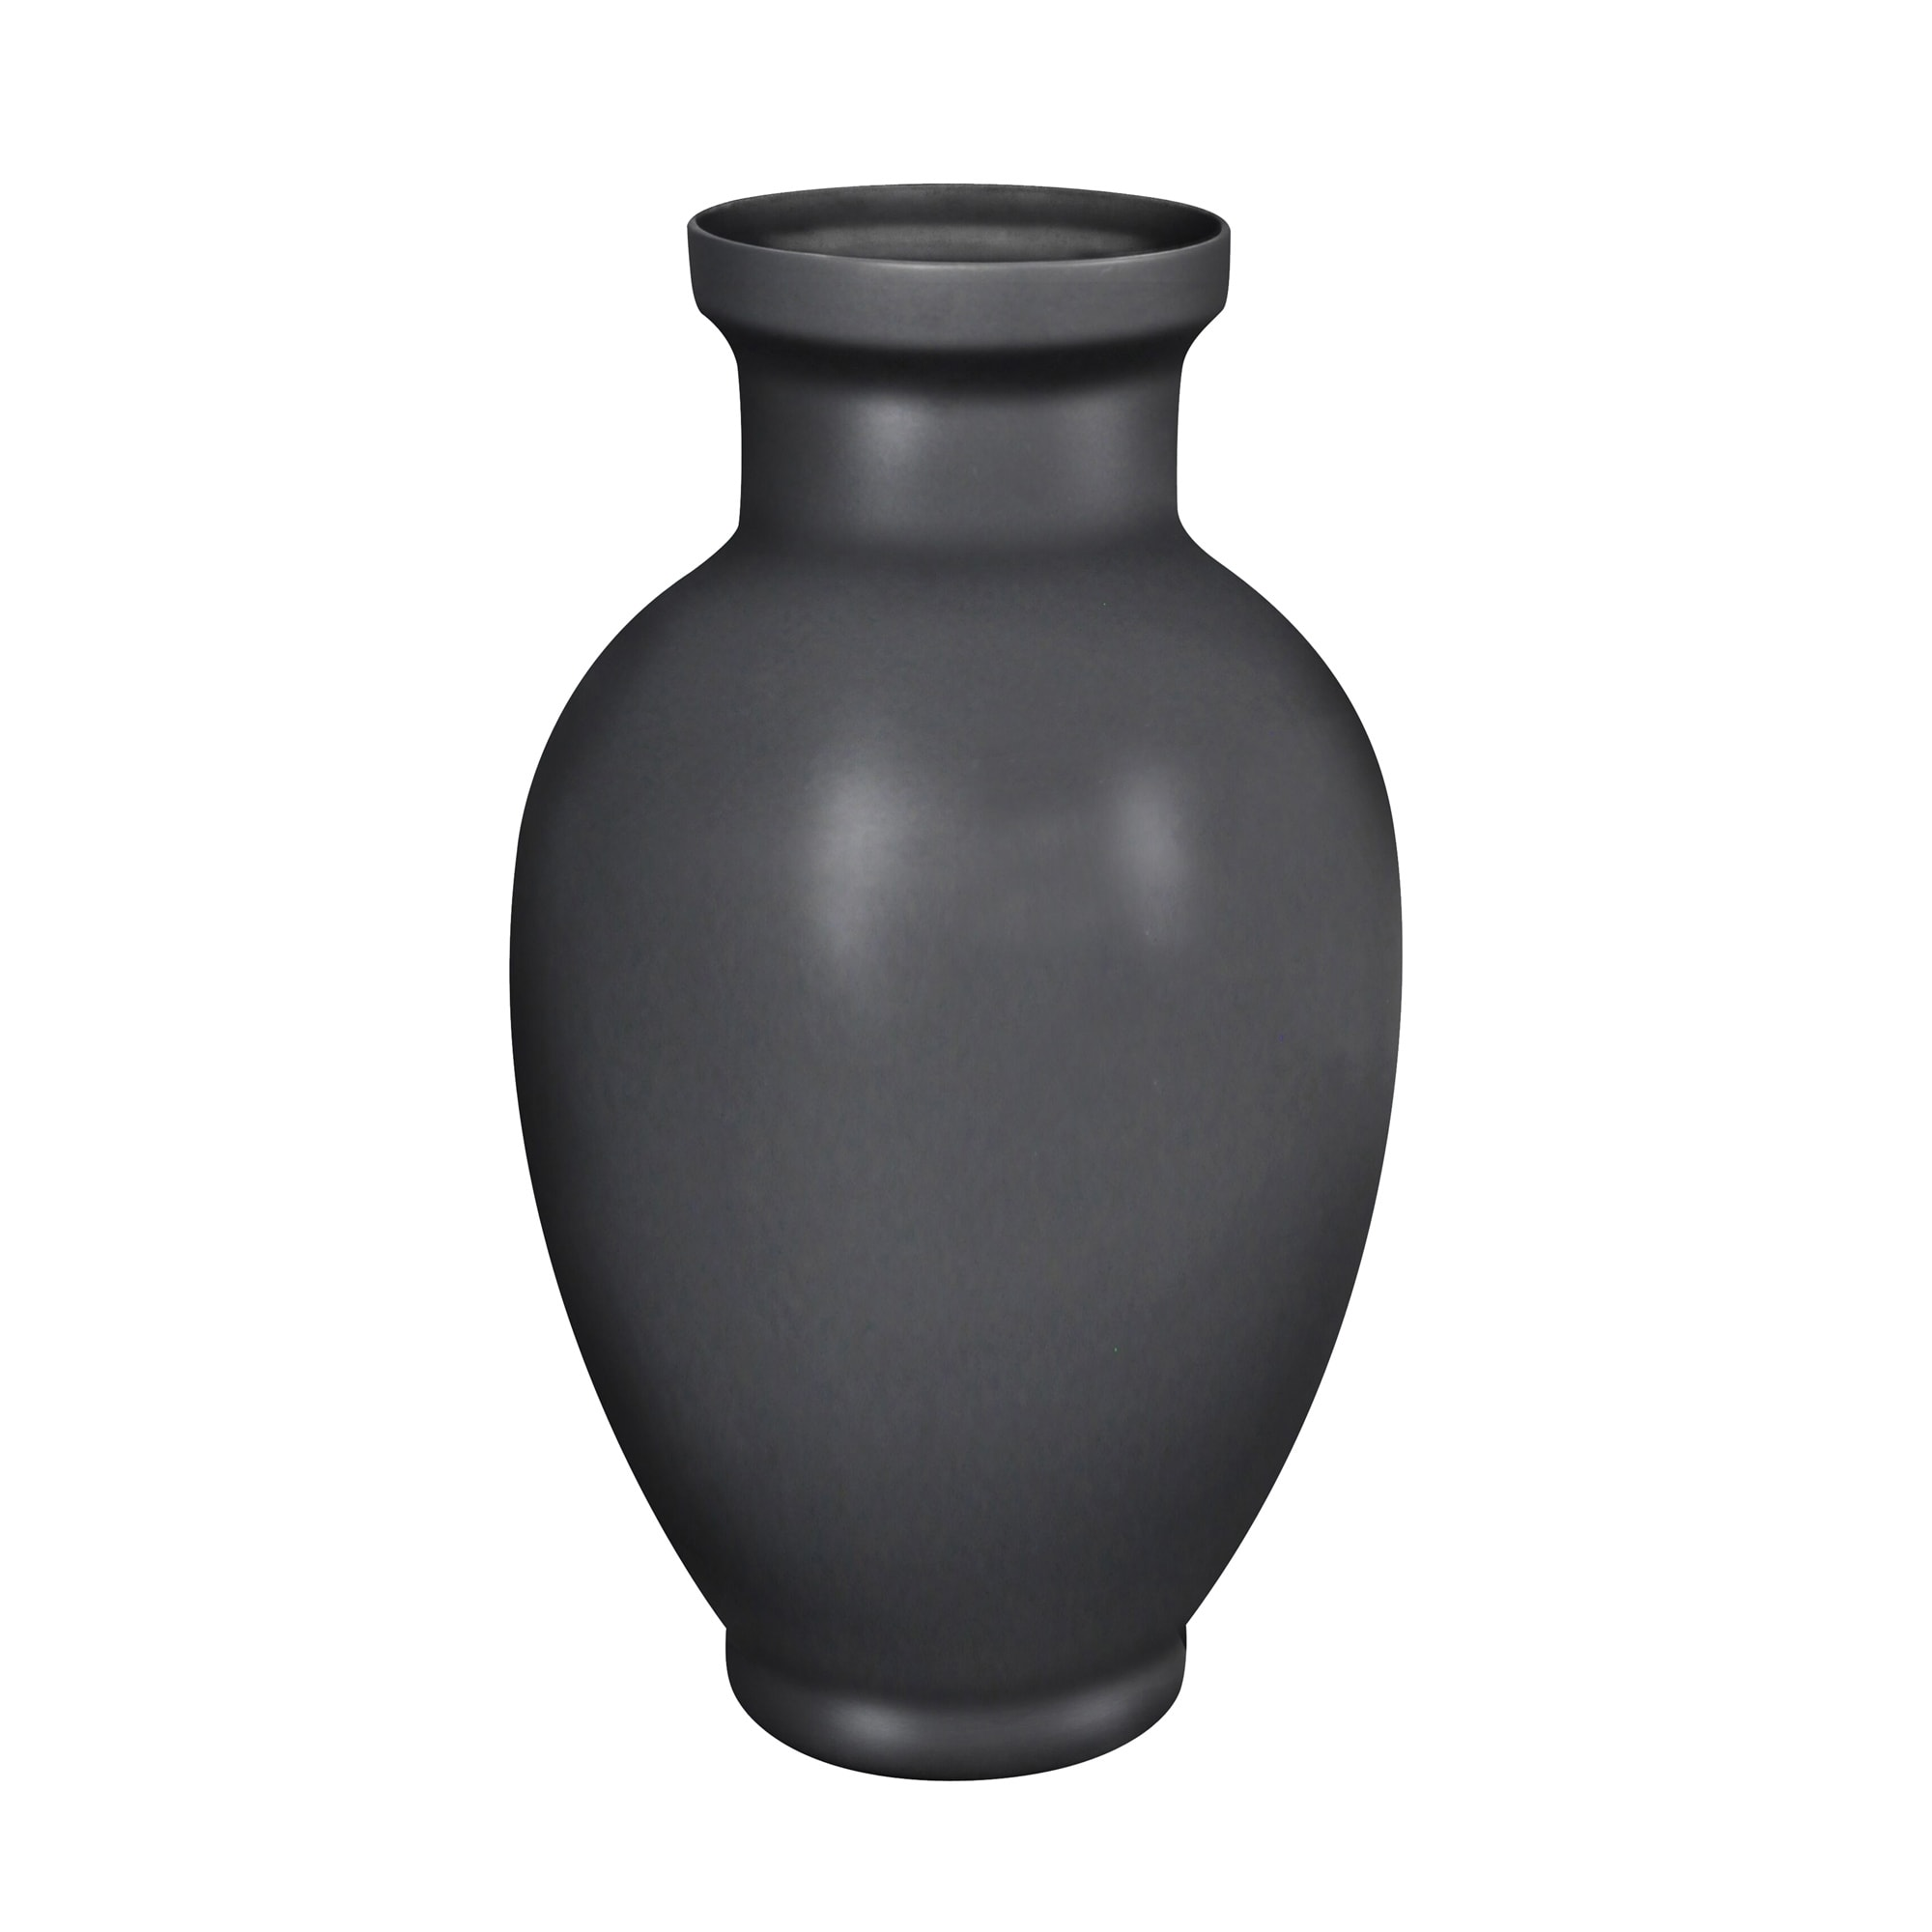 DECORATIVE CERAMIC VASE, MATTE BLACK (11.5x 11.5 x19.5,BLACK)